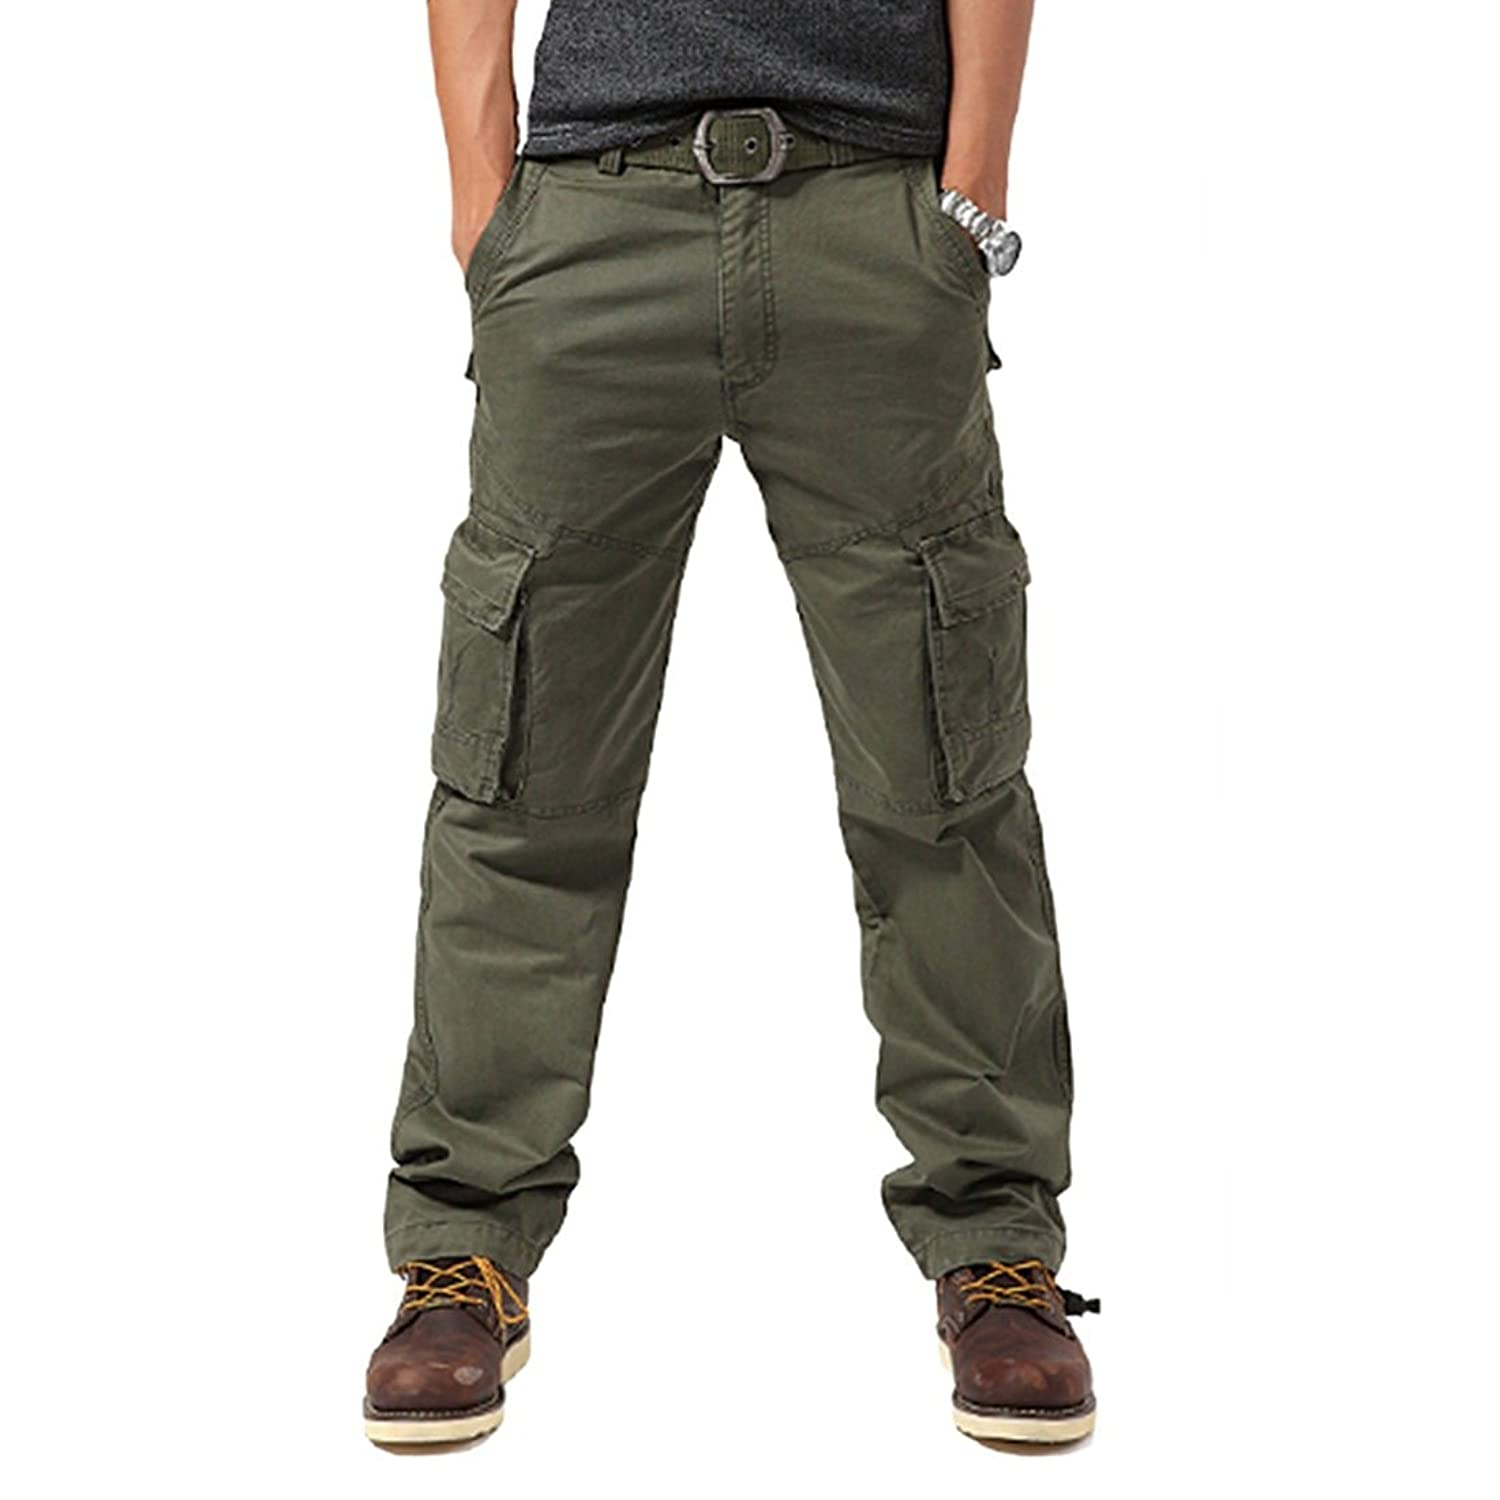 Men's Fashion Pockets Pants Cargo Overalls Training Tactical Britches Trousers